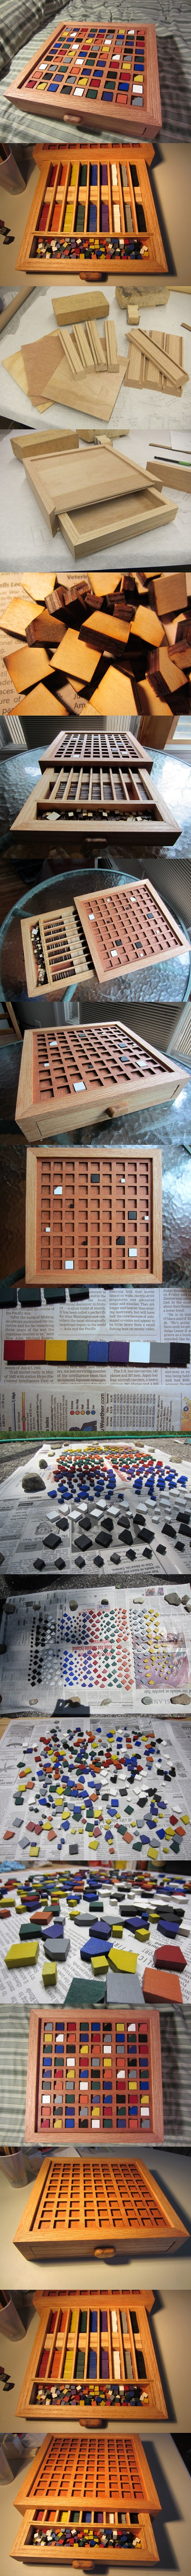 How to make your own cool color based wooden sudoku board step by step DIY instructions